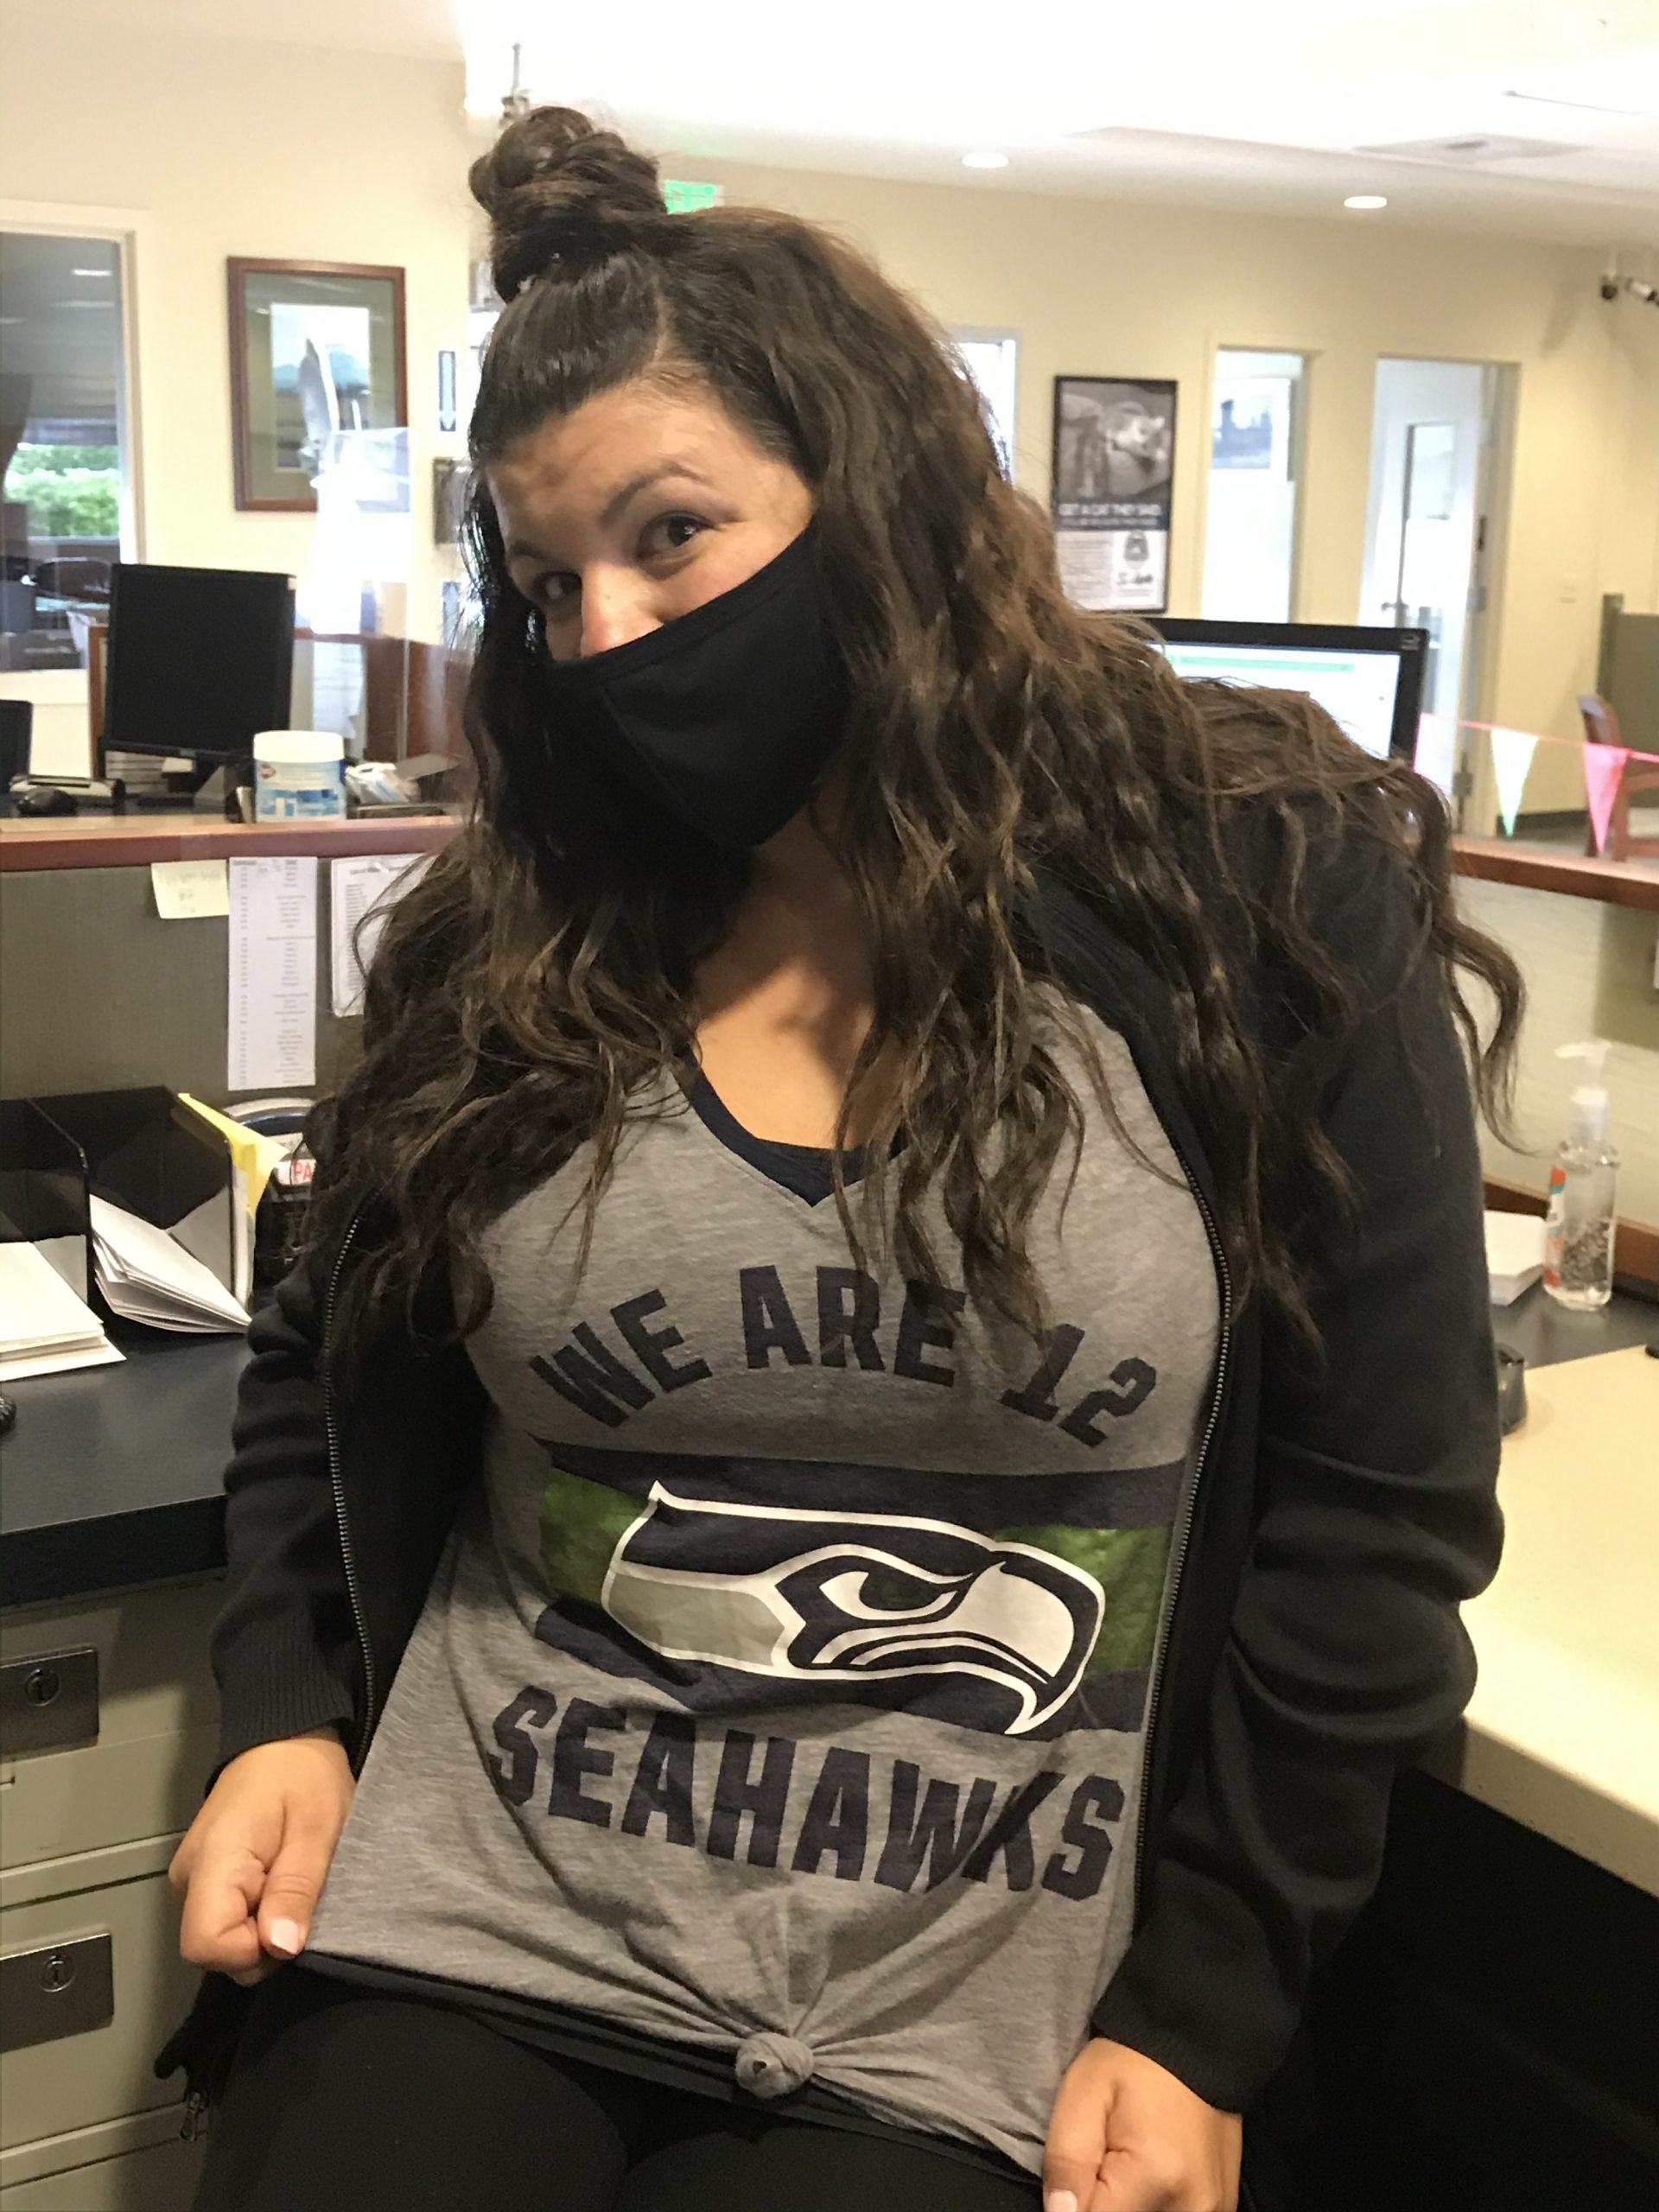 WRCU staff member in Seahawks shirt